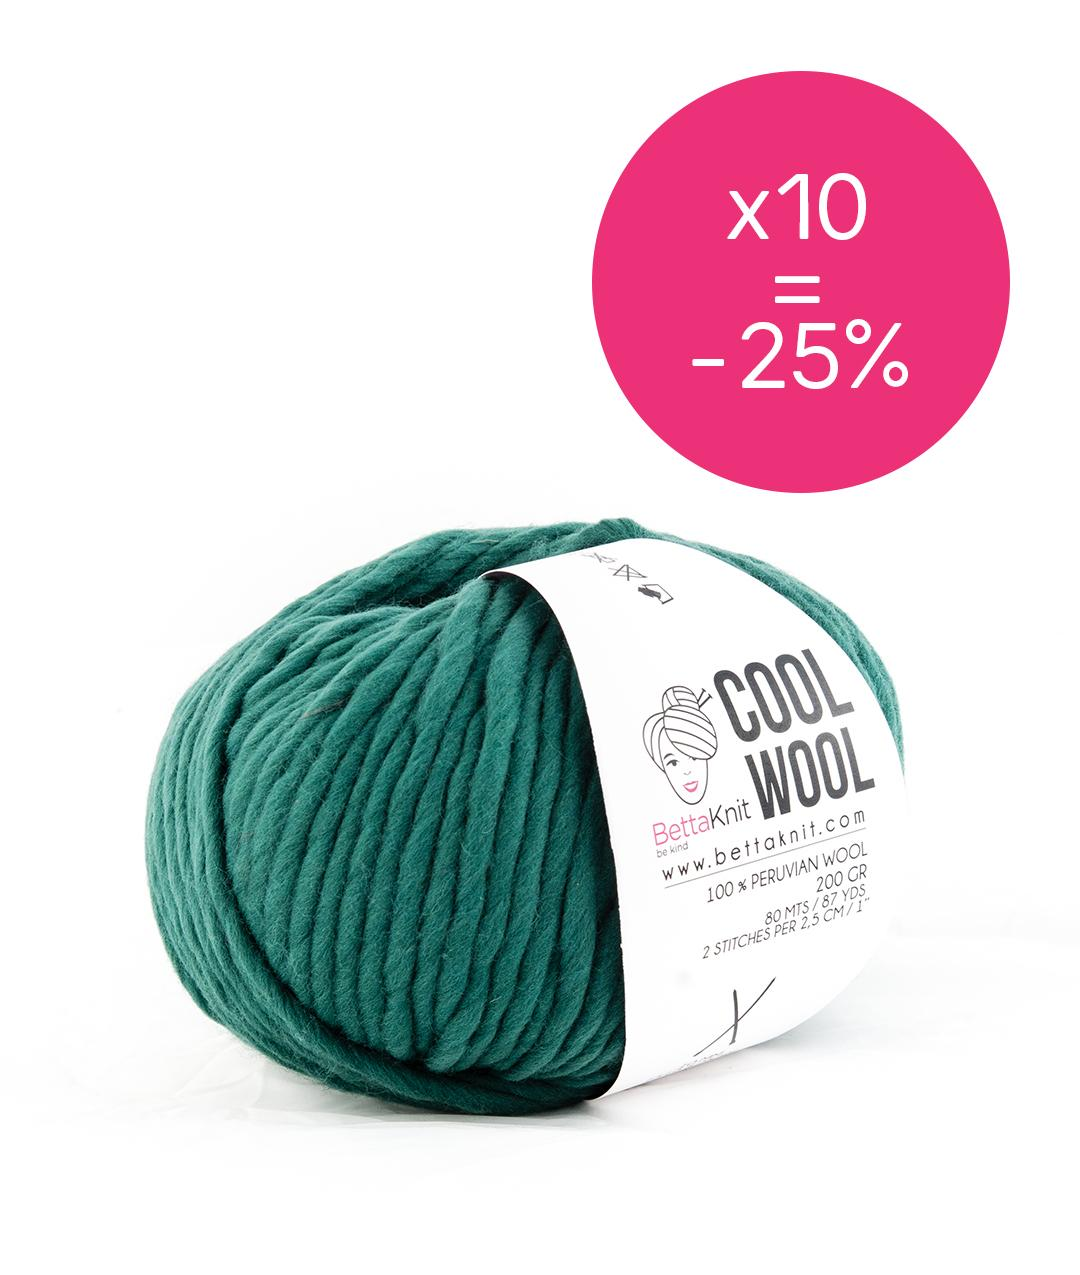 Yarn boxes without Needles  - Pack of Yarn - Cool Wool Pack - 10 balls - 1